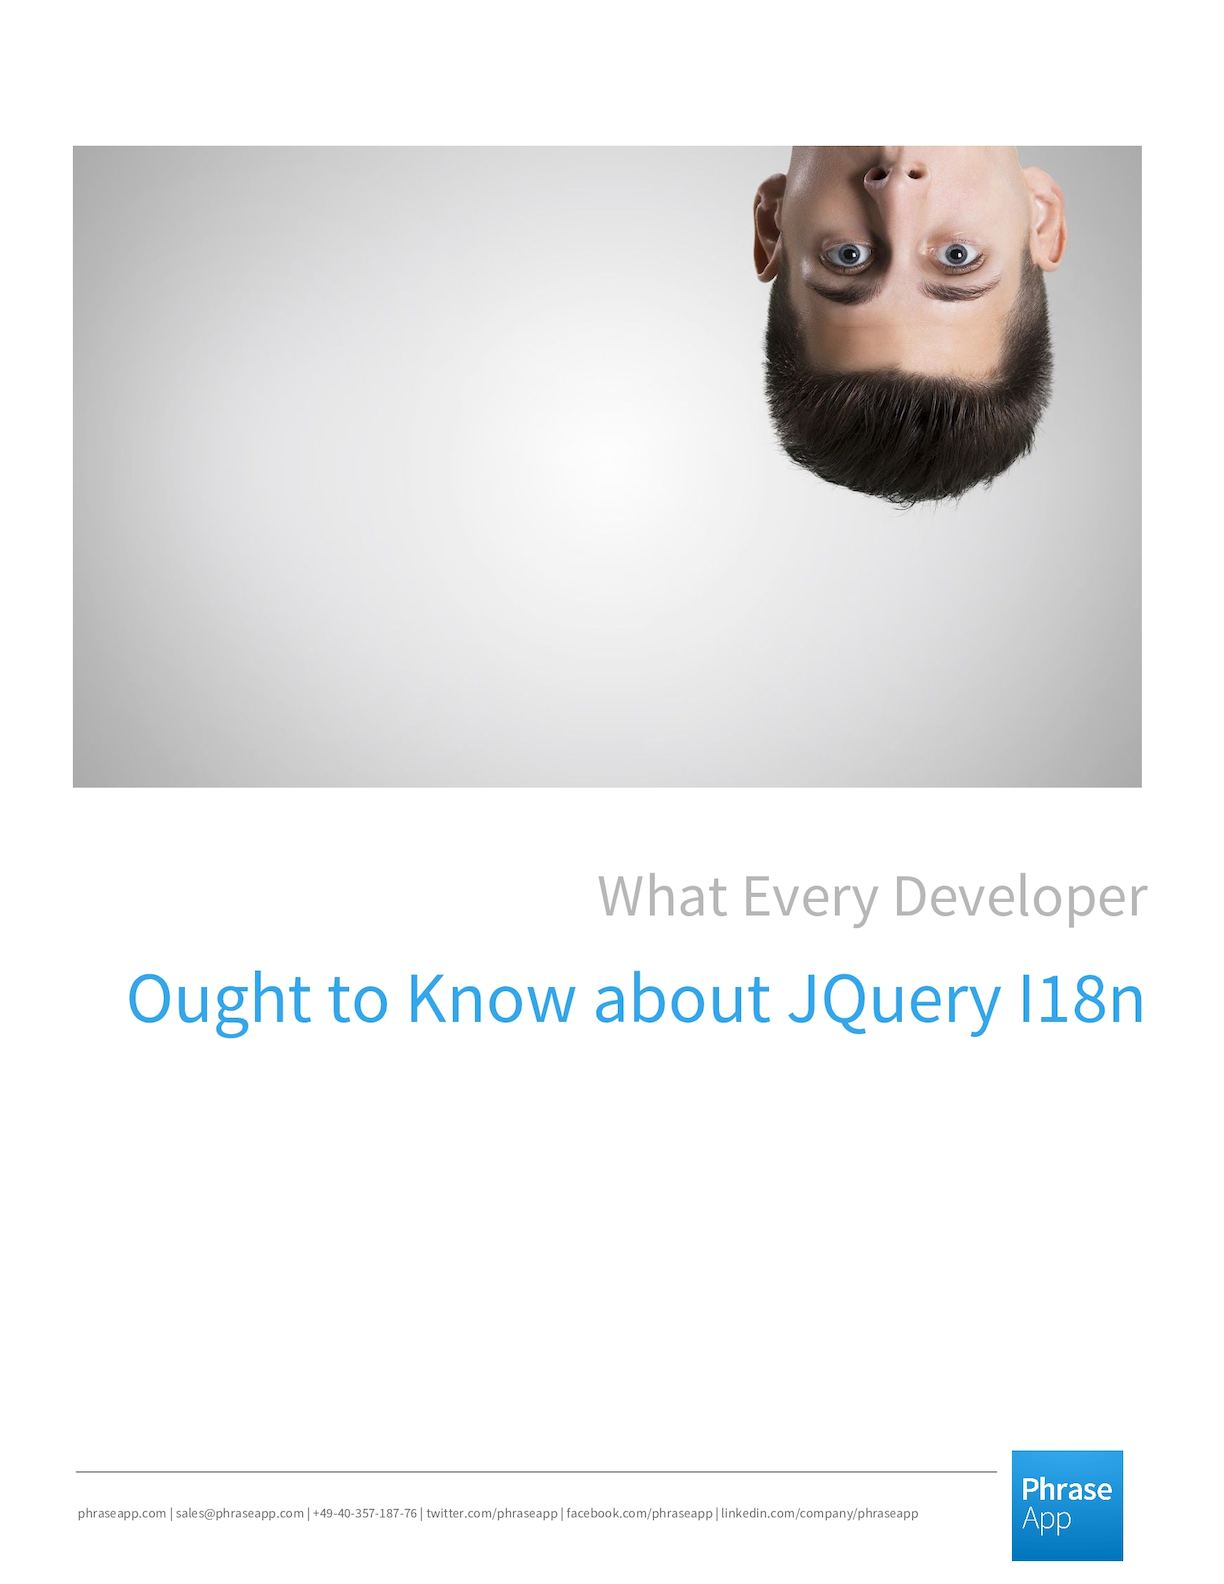 Calaméo - What Every Developer Ought To Know About Jquery I18n